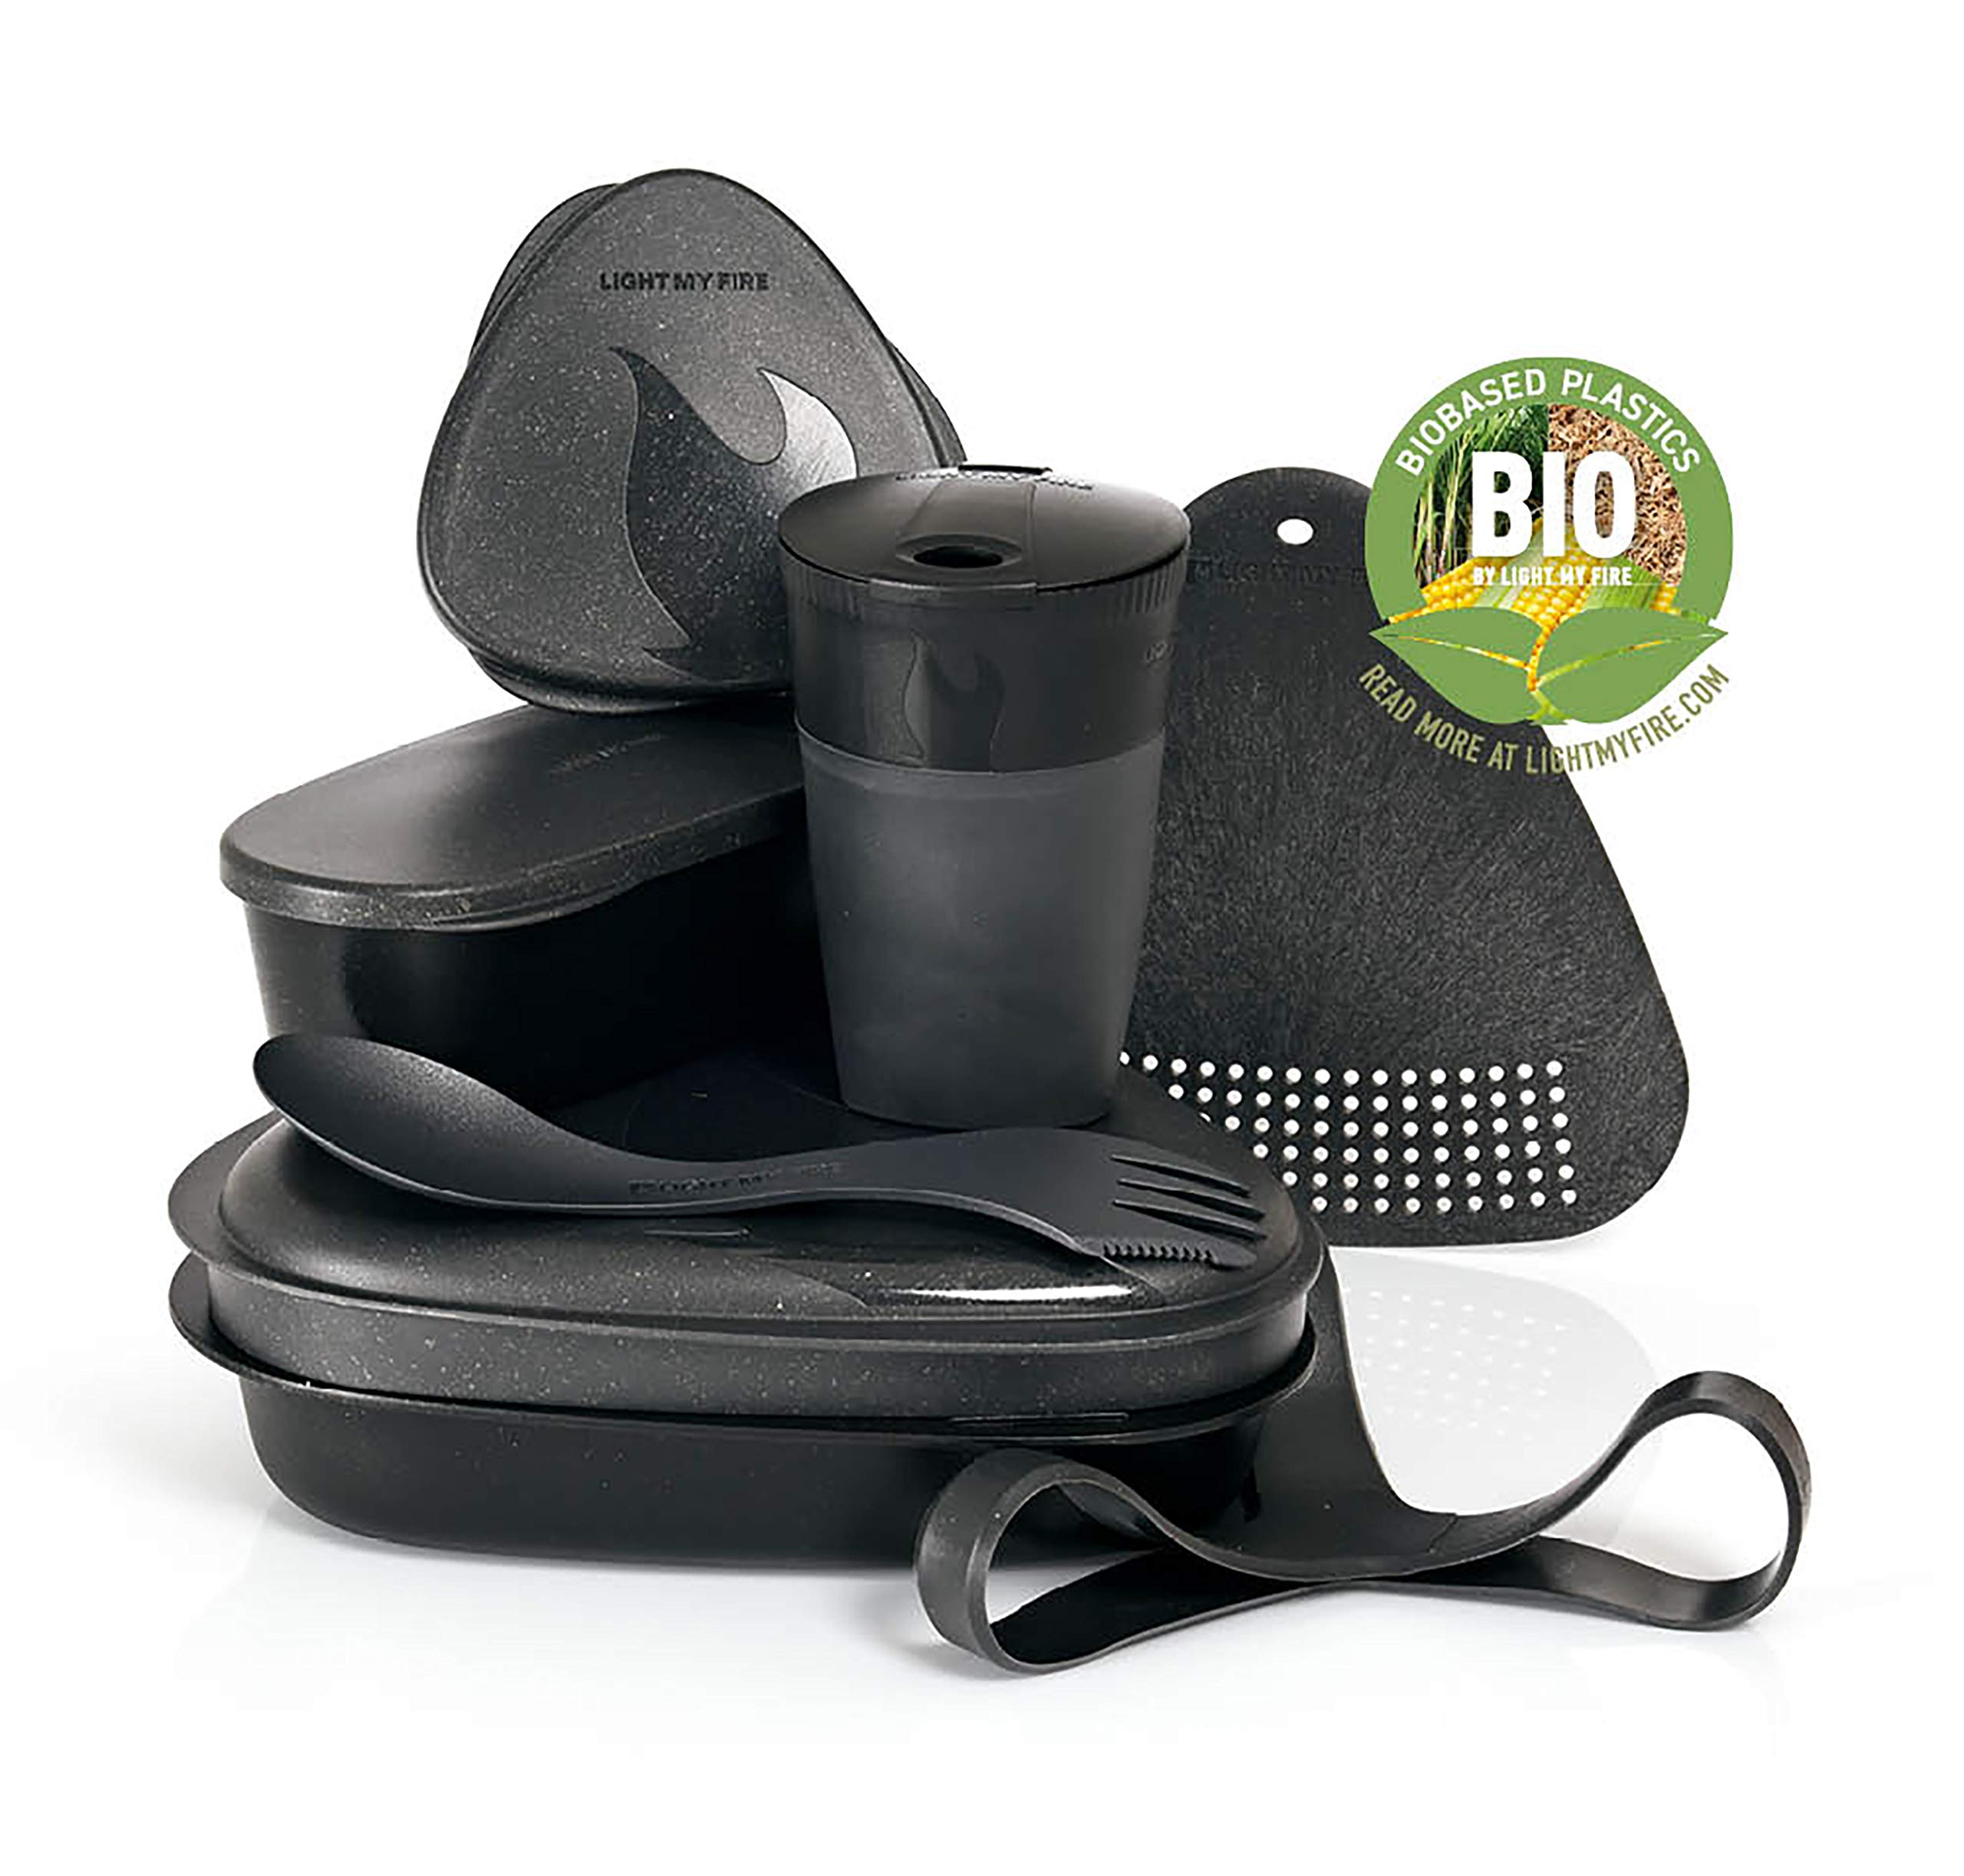 Light My Fire 8-Piece MealKit BIO Camping Mess Kit with Cup, Bowl, Plate, Spork and Storage Con by Light my Fire